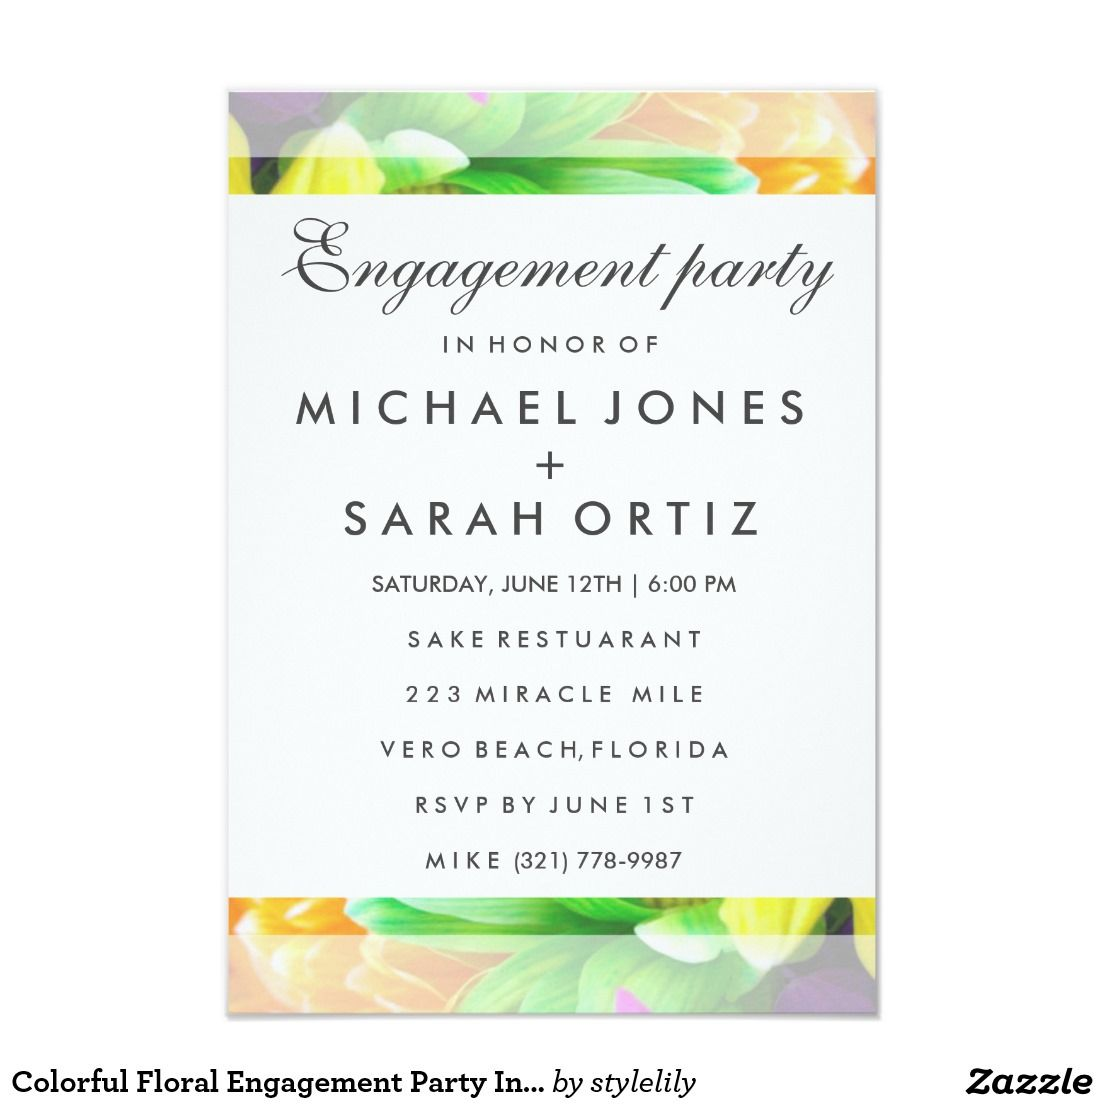 Colorful Floral Engagement Party Invitation | Wedding :Engagement ...